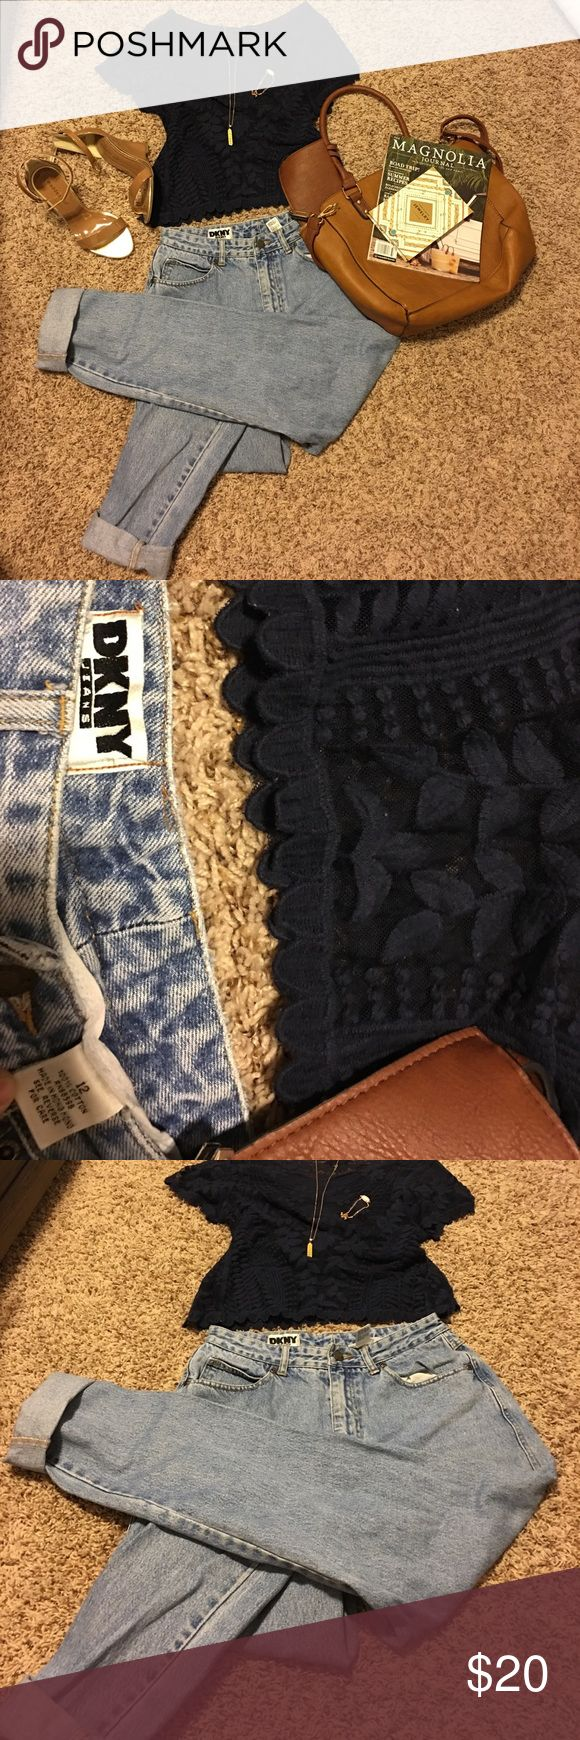 Vintage 90s DKNY jeans size 12. Vintage DKNY jeans size 12. Runs small.high wasted.light wash jeans Dkny Jeans Straight Leg